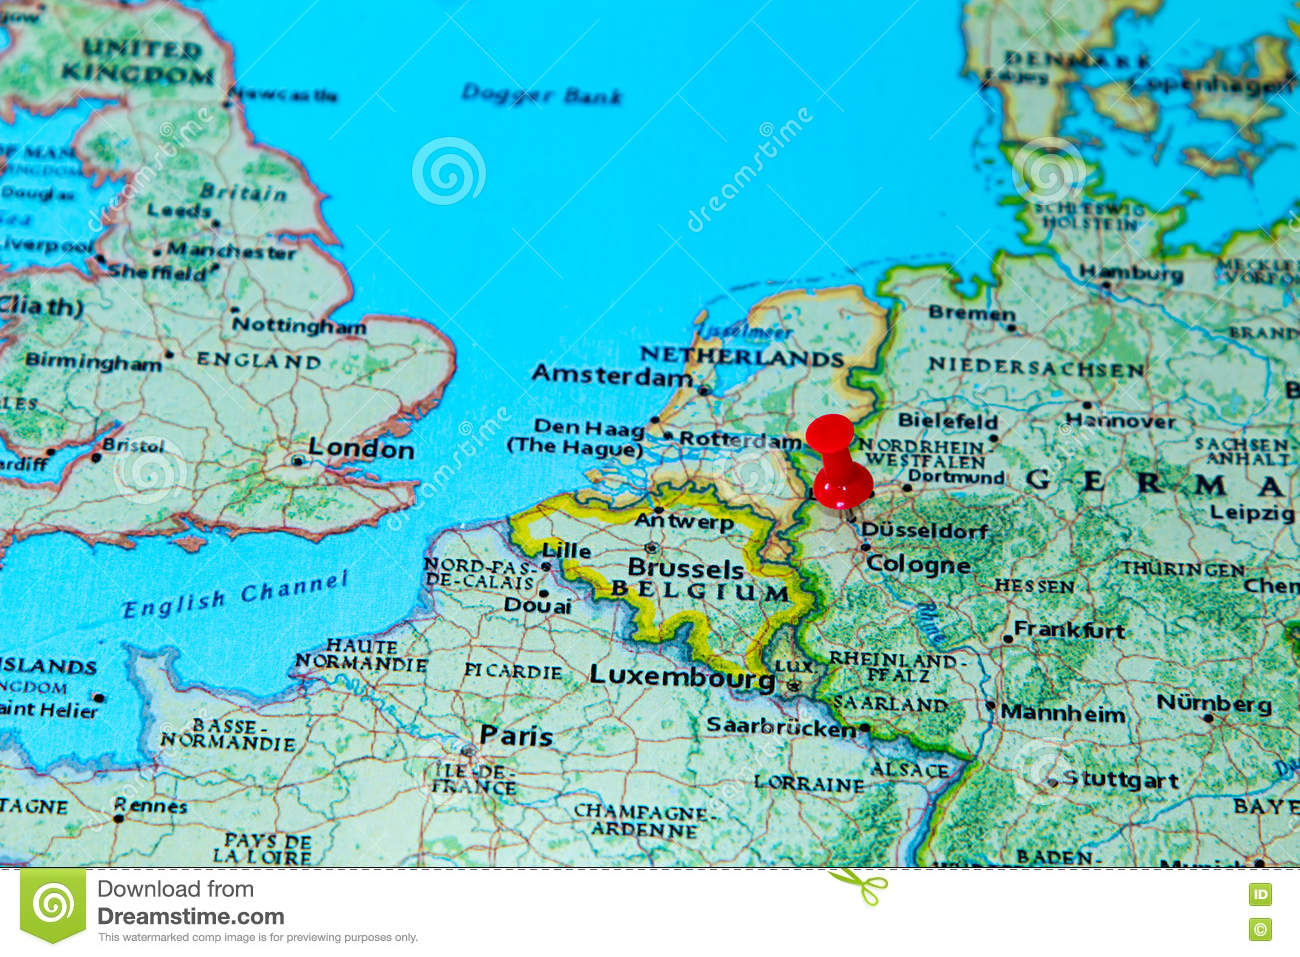 dizeldorf mapa Dusseldorf, Germany Pinned On A Map Of Europe Stock Image   Image  dizeldorf mapa